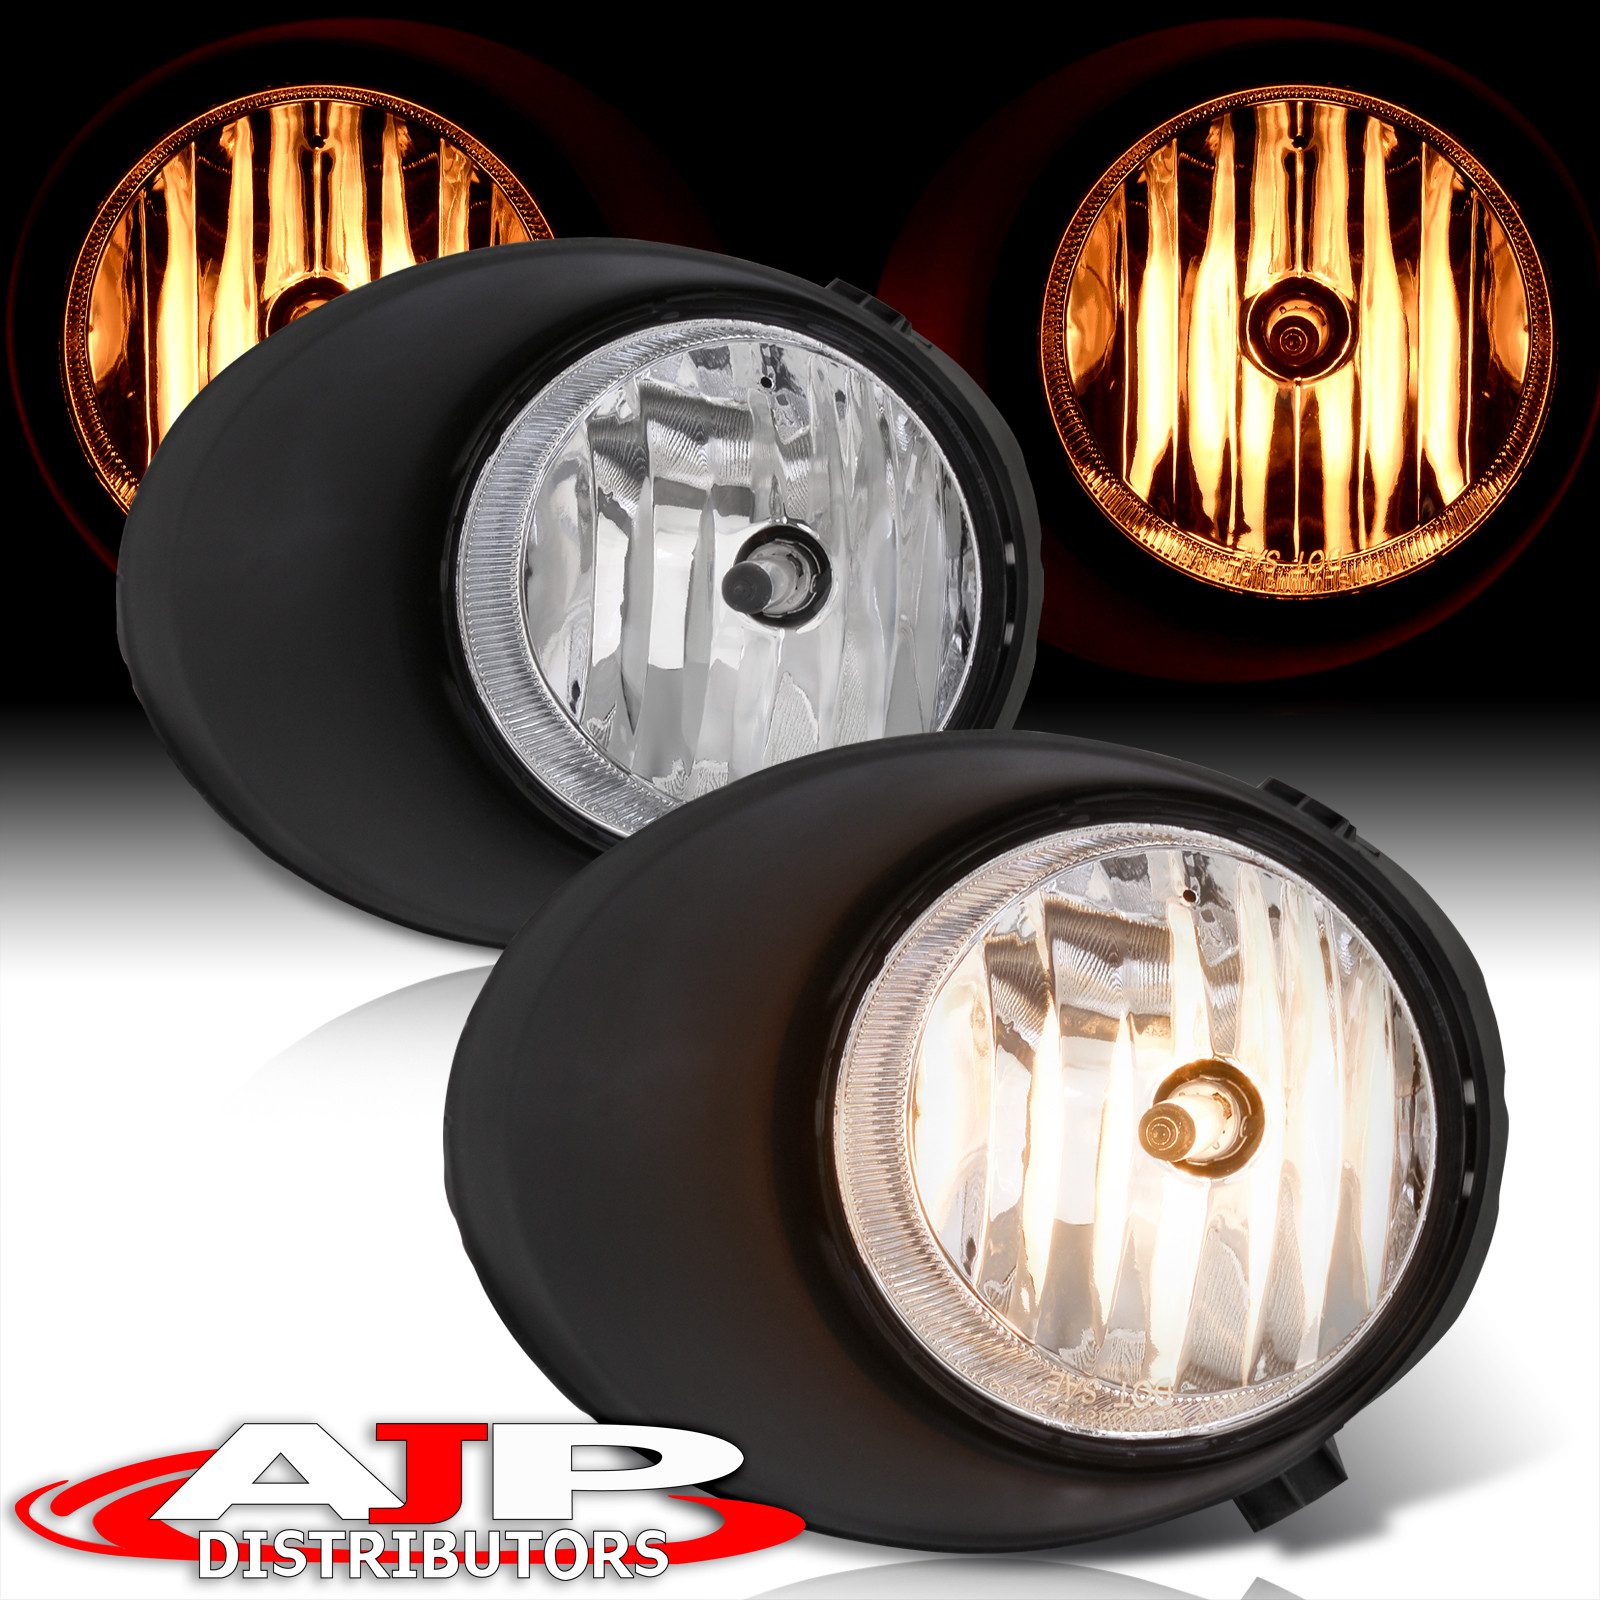 Details about For 07 08 09 10 11 12 Tundra Jdm Front Fog Light Driving  Chrome Housing Clear